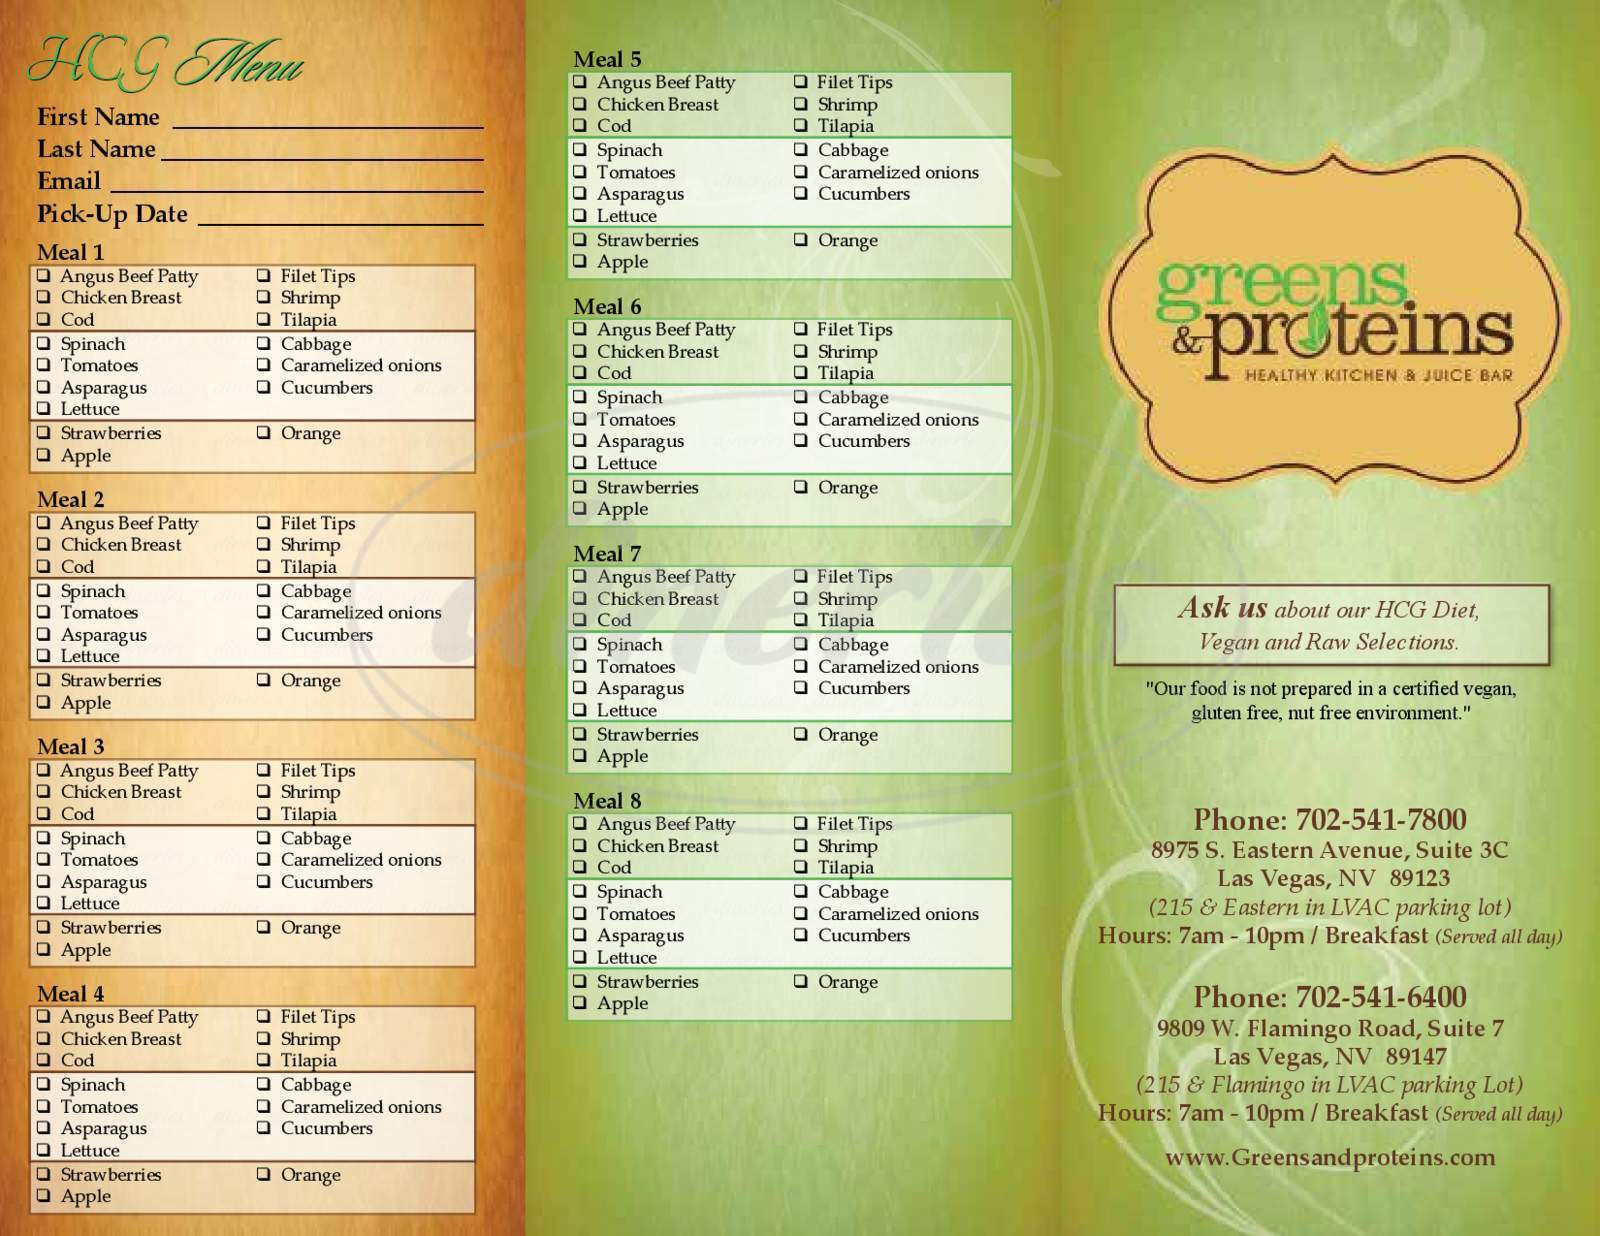 menu for Greens and Proteins